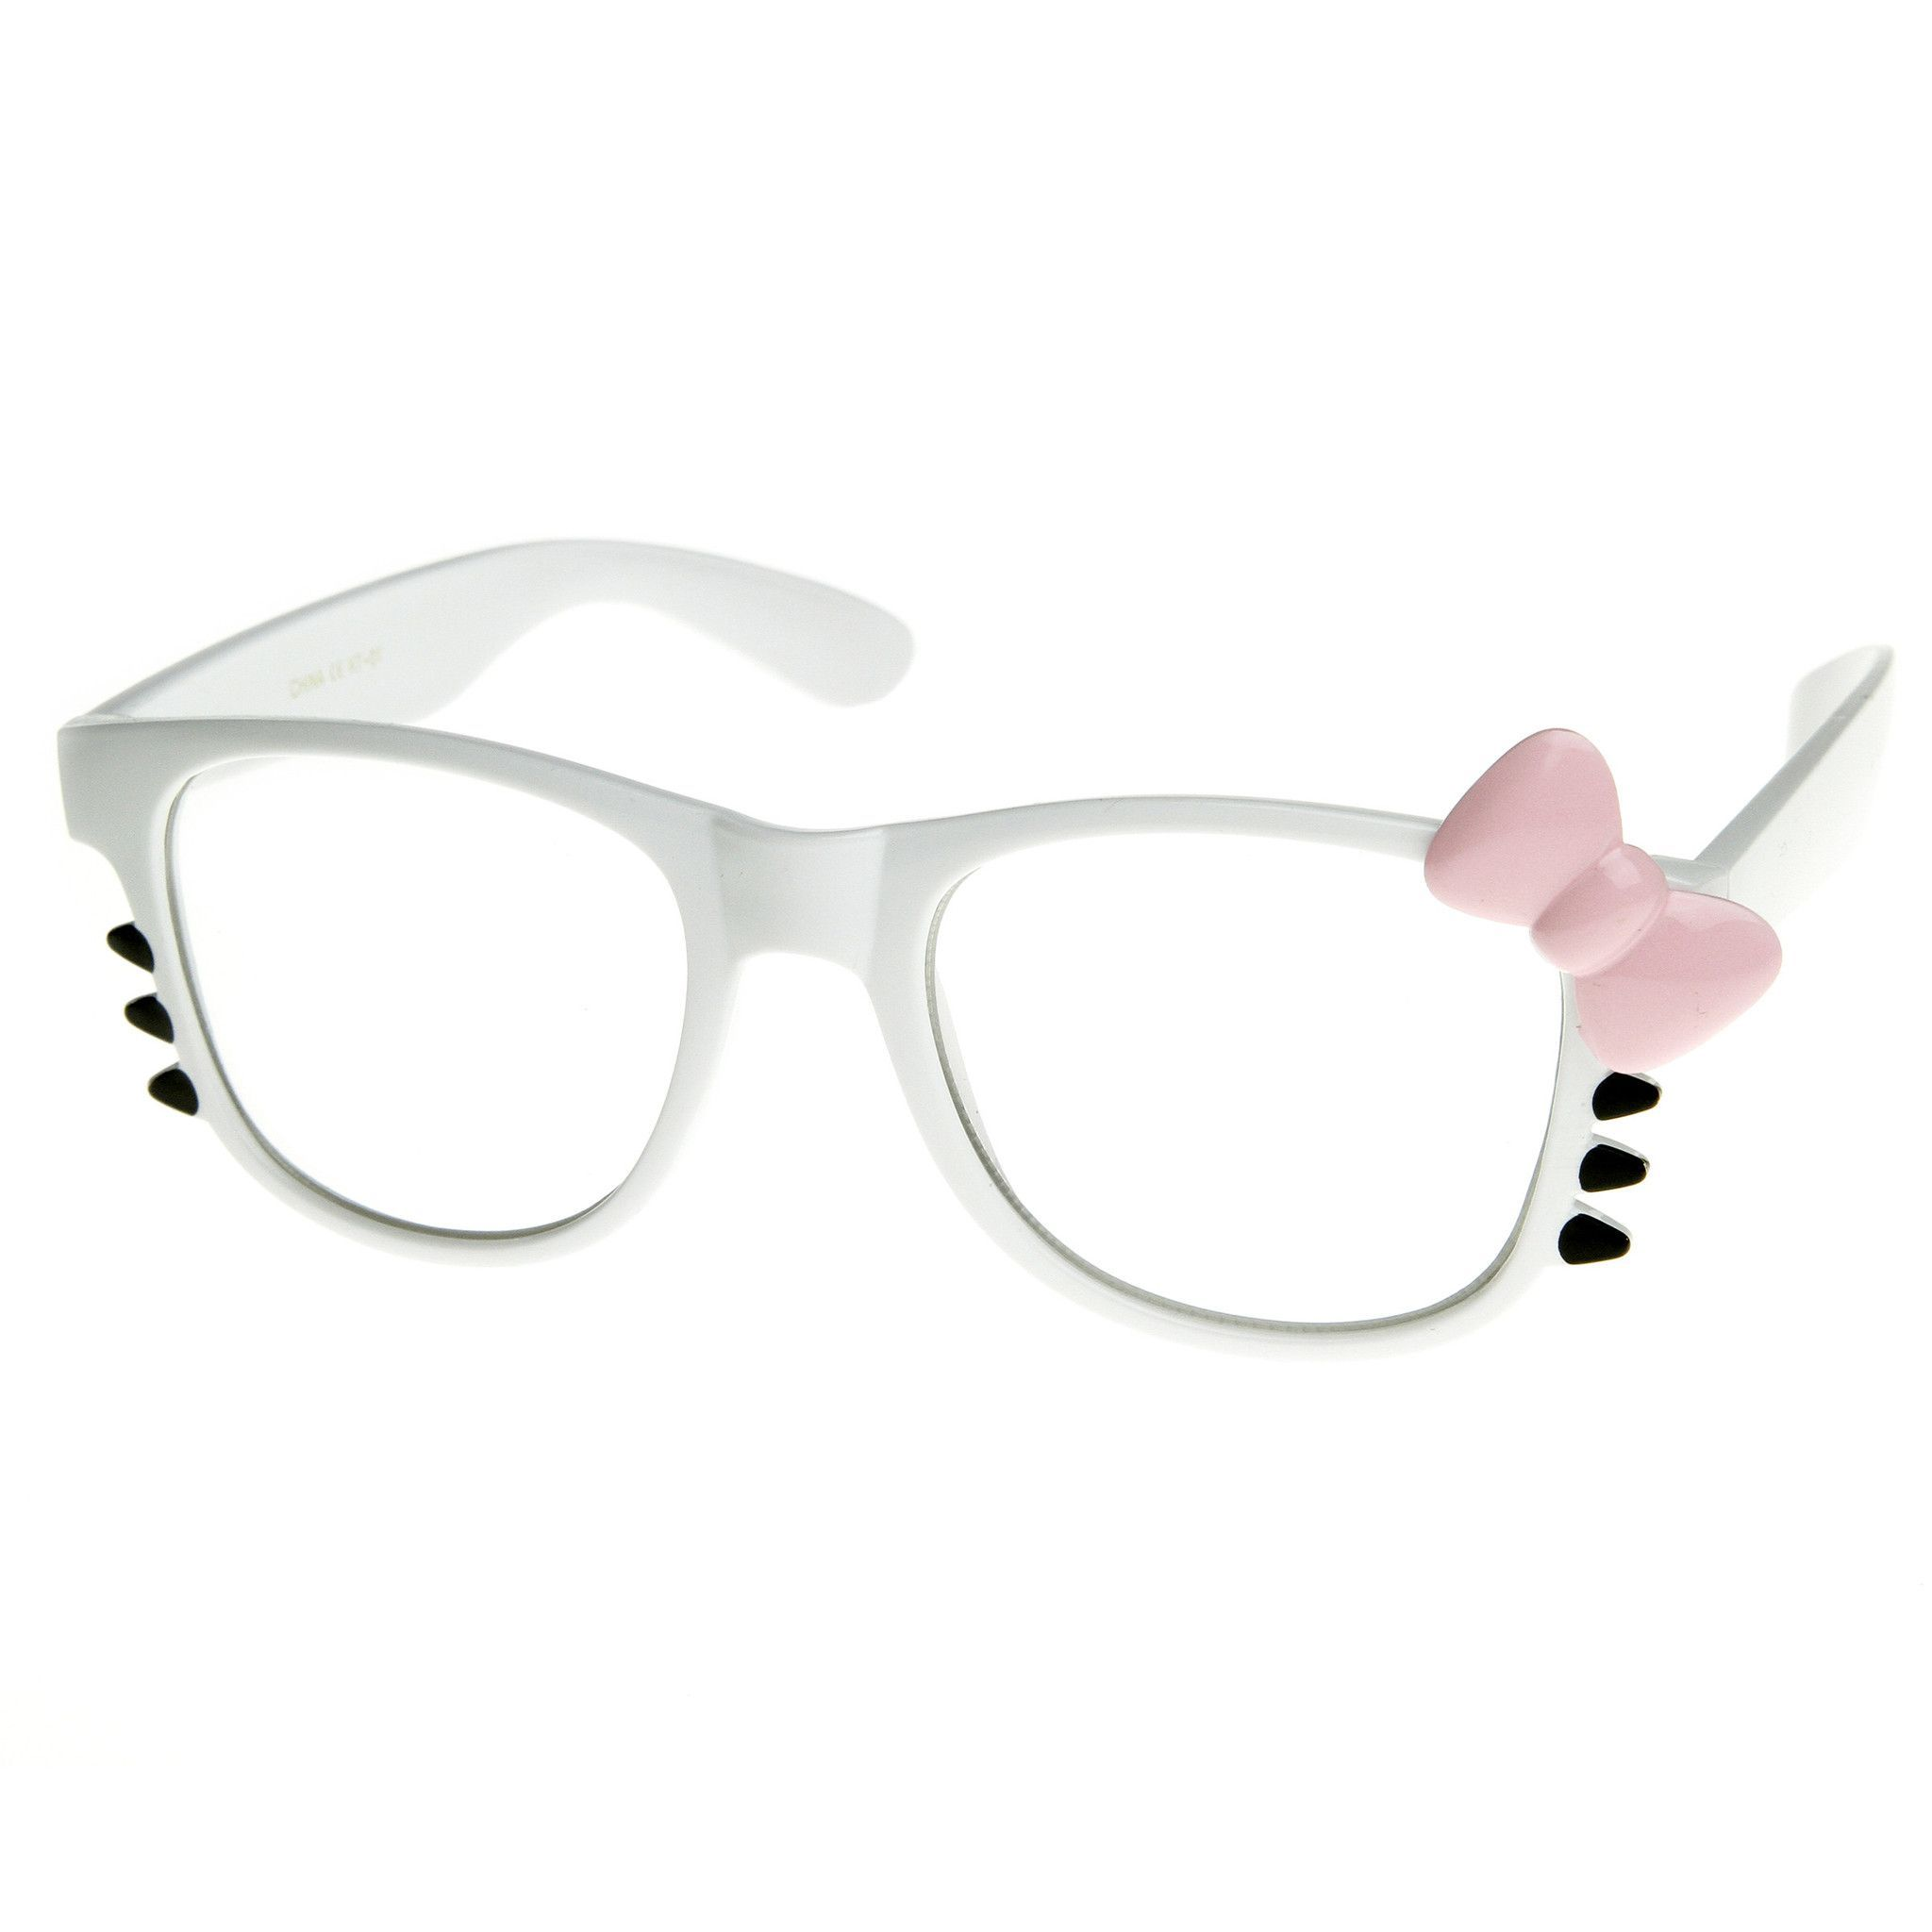 416743c56 Cute Womens Hello Kitty Bow Clear Lens Glasses With Whiskers 8499 ...